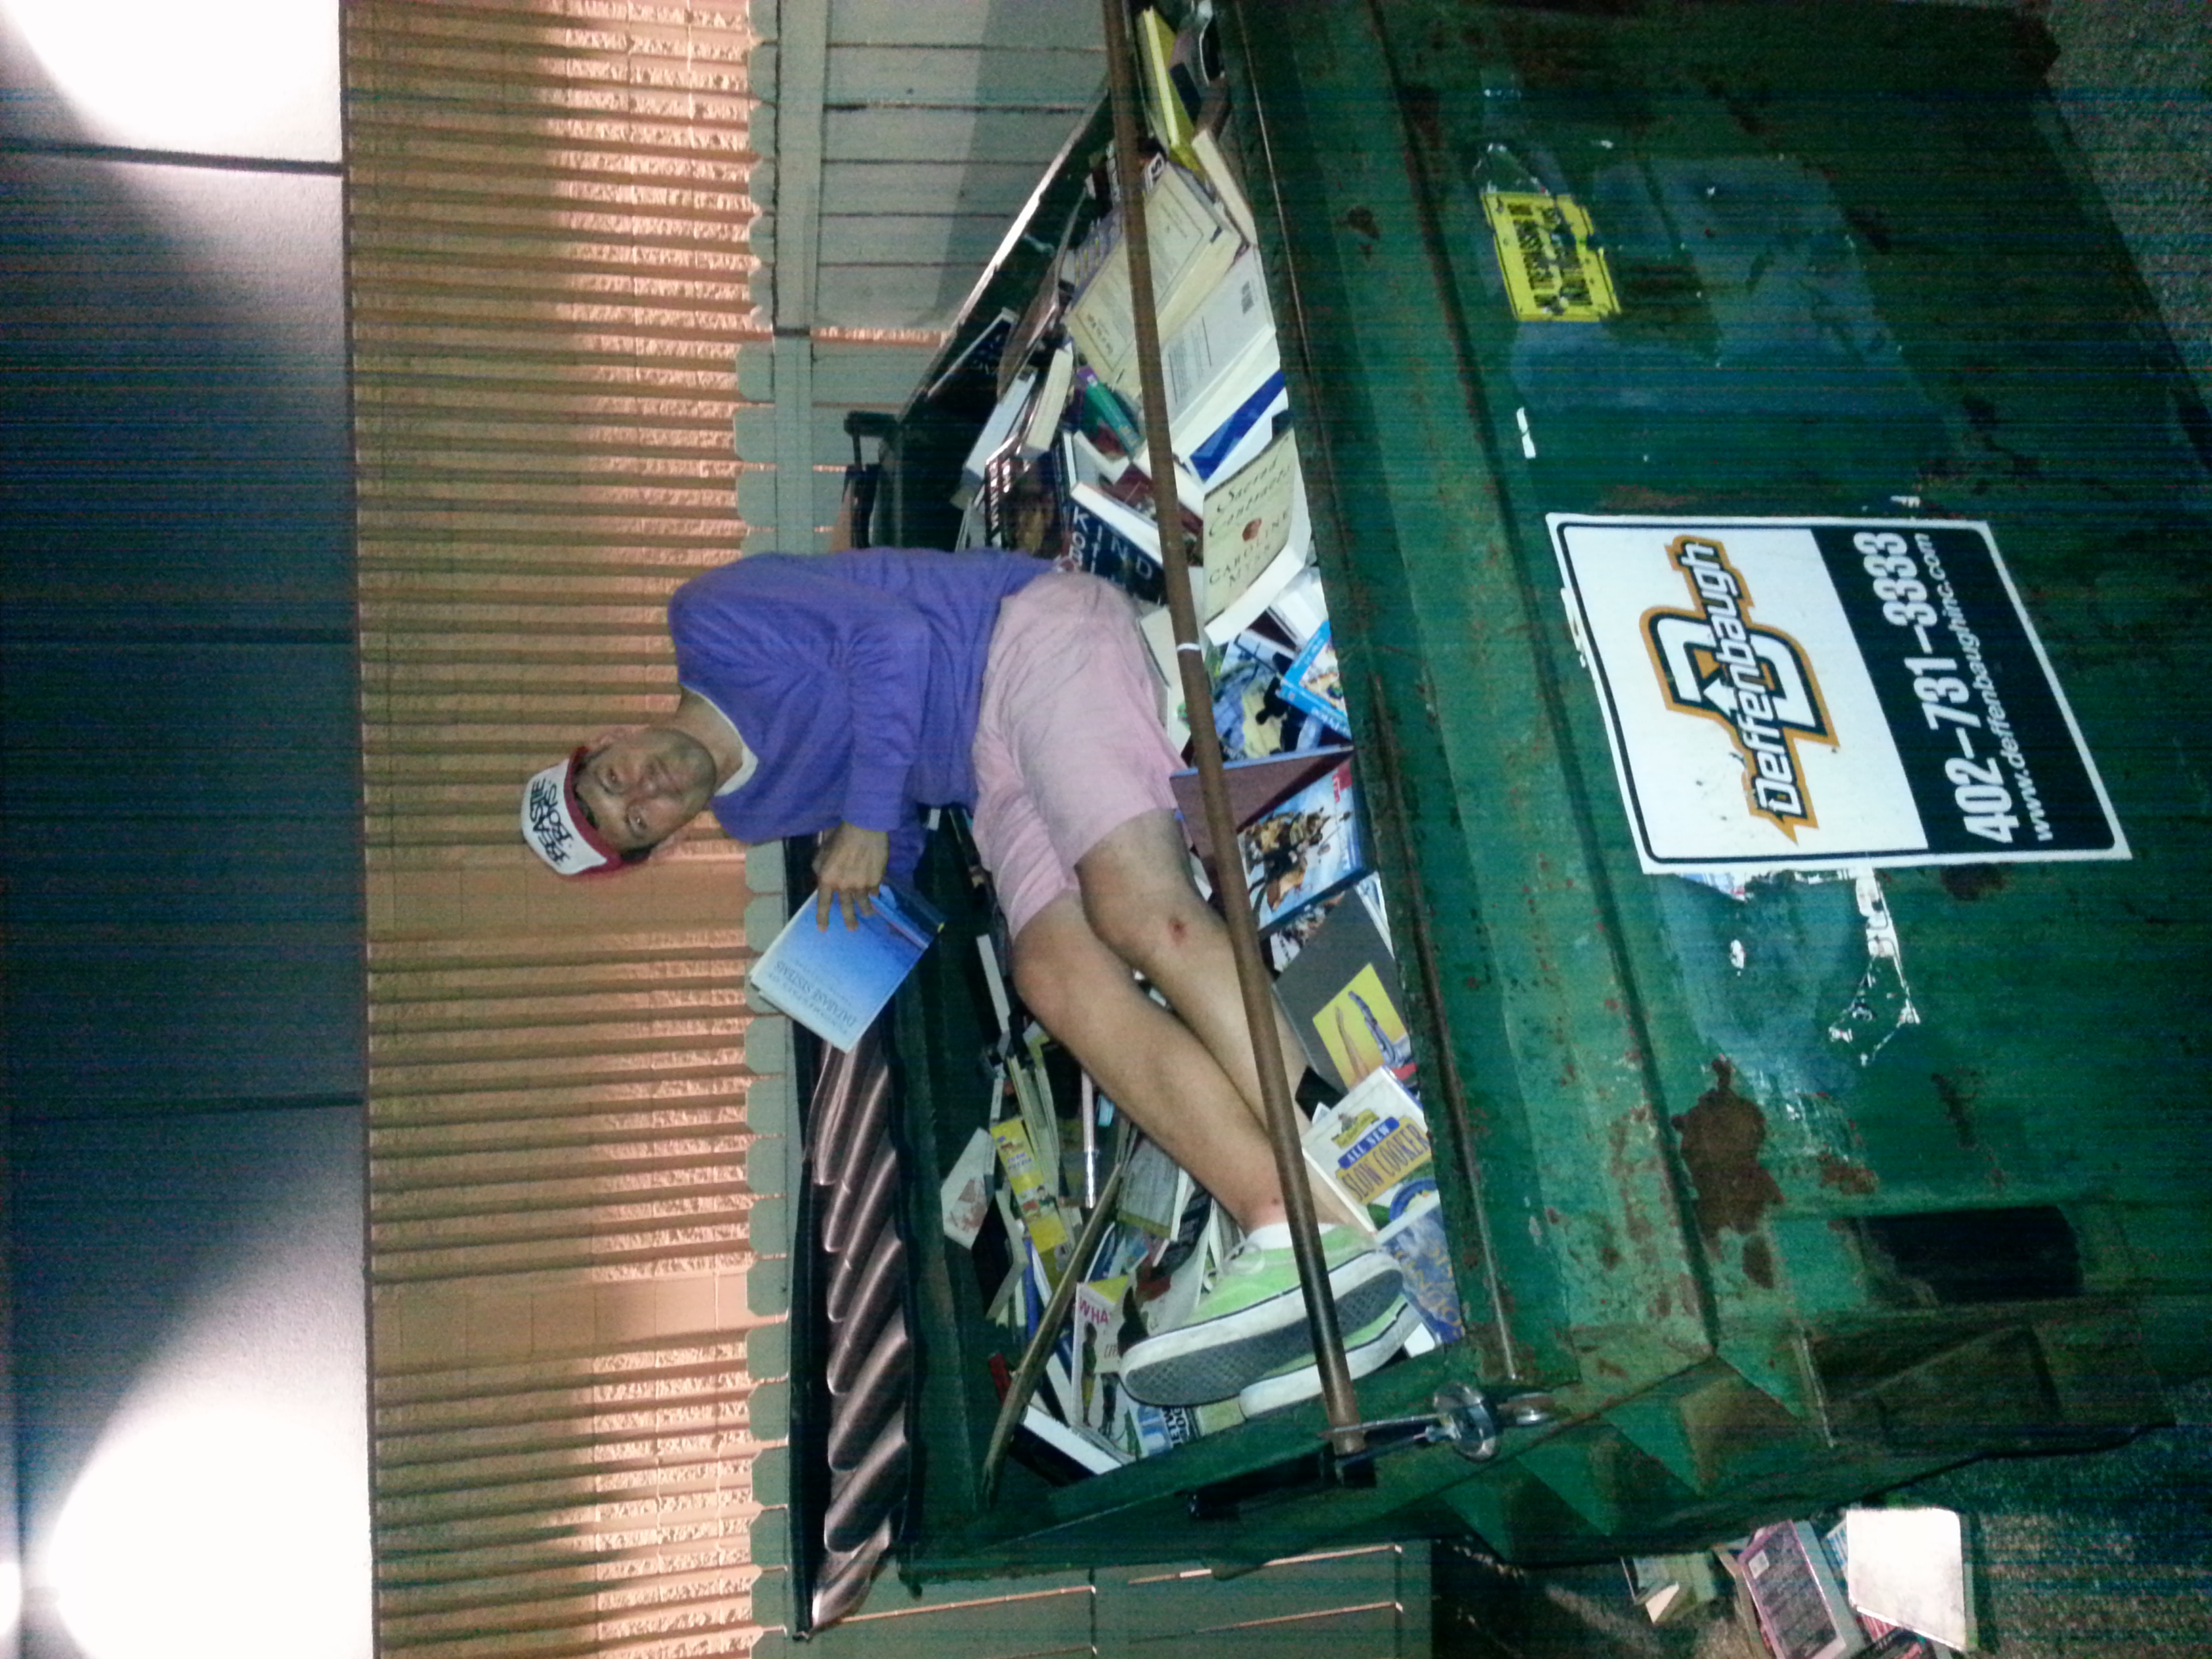 dumpster diving for books a primer for amazon sellers the yes this is actually me